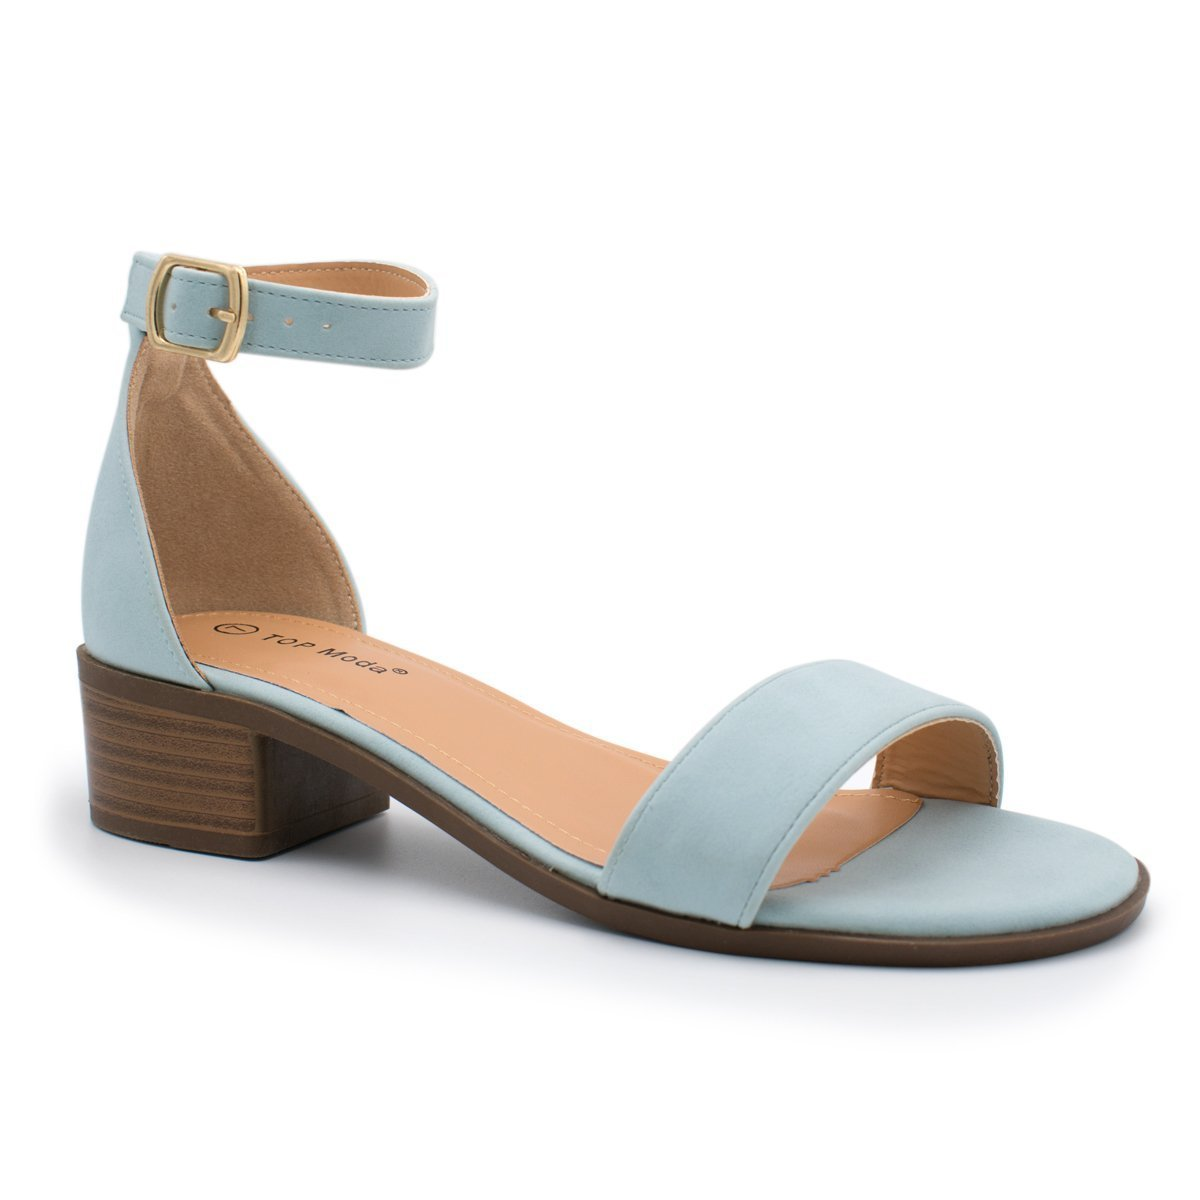 93363783c6 Amazon.com | TOP Moda Women's Vision-6 Ankle Strap Open Toe Heeled Sandal  Light Blue 7.5 | Heeled Sandals